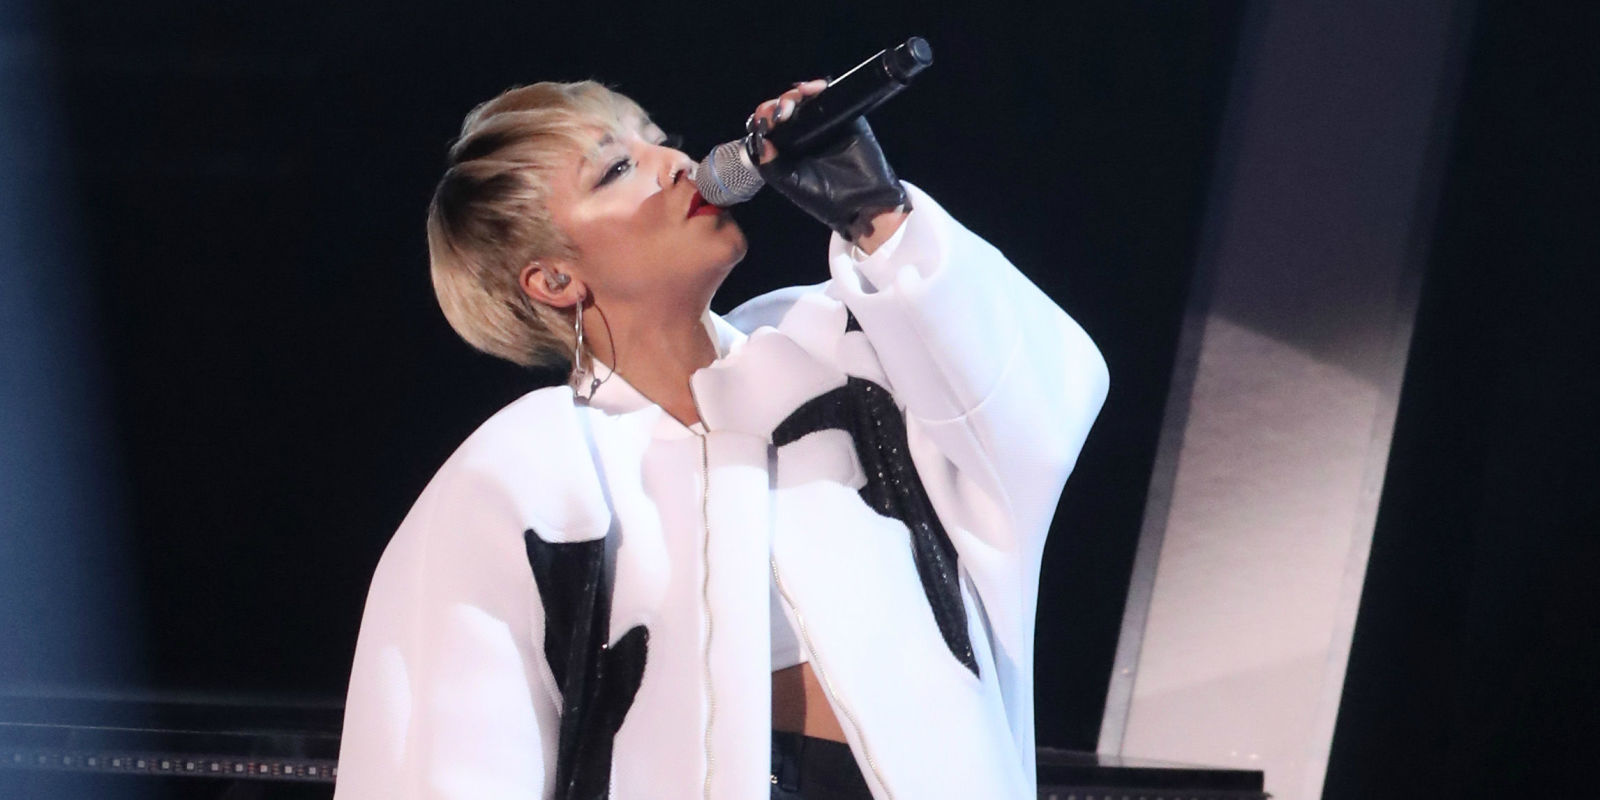 Watch Tanya Laceys Electrifying Performance As She Opens The - Basement jaxx good luck